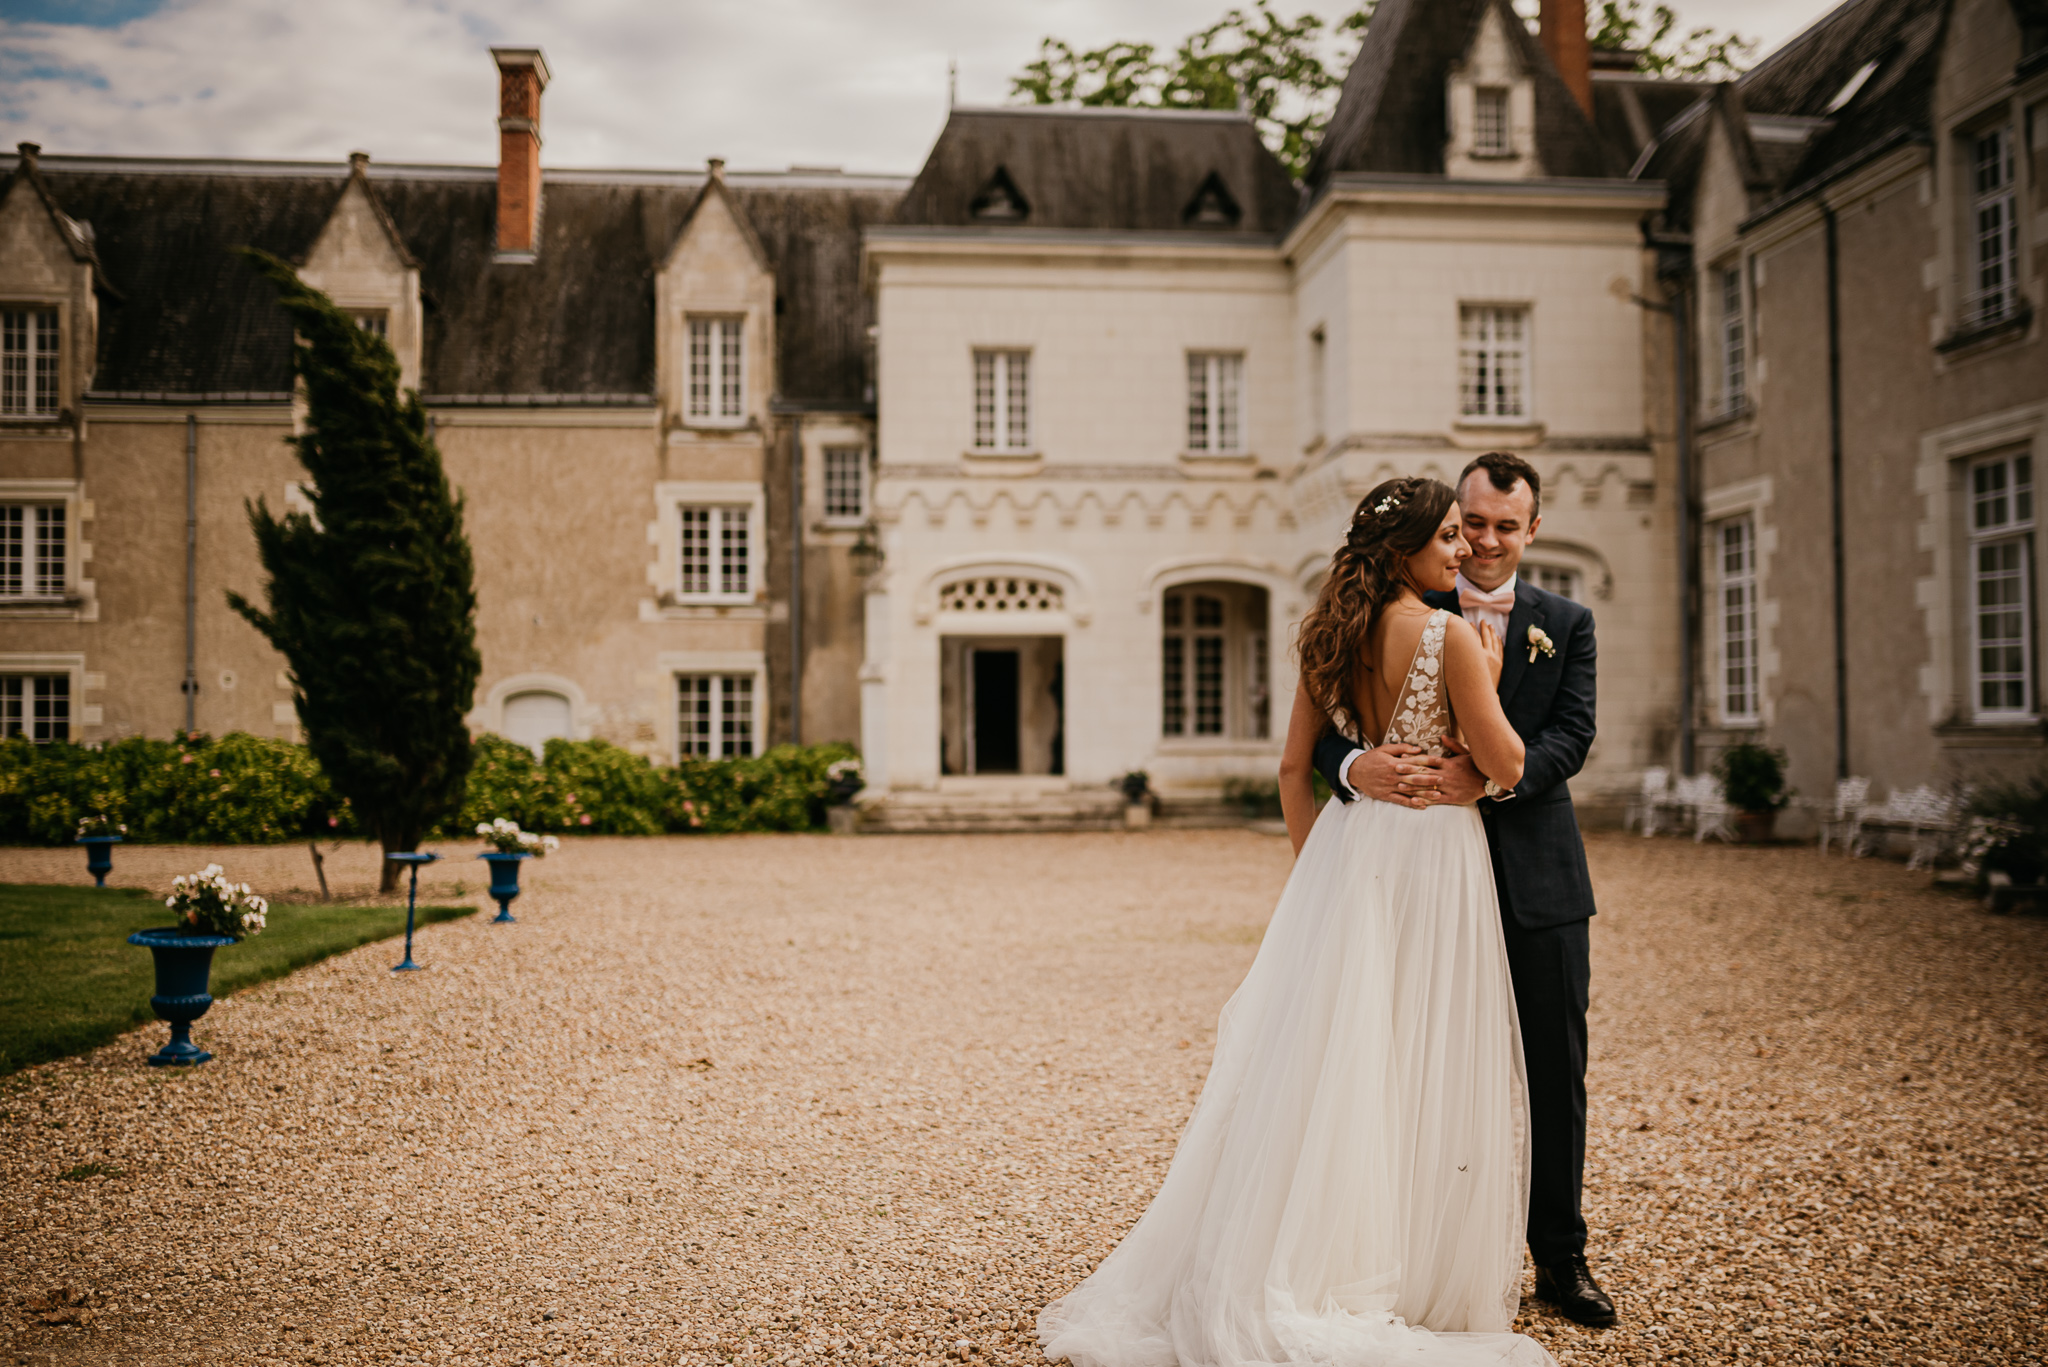 #chateauderazay #europesummerwedding #summerheartphotography